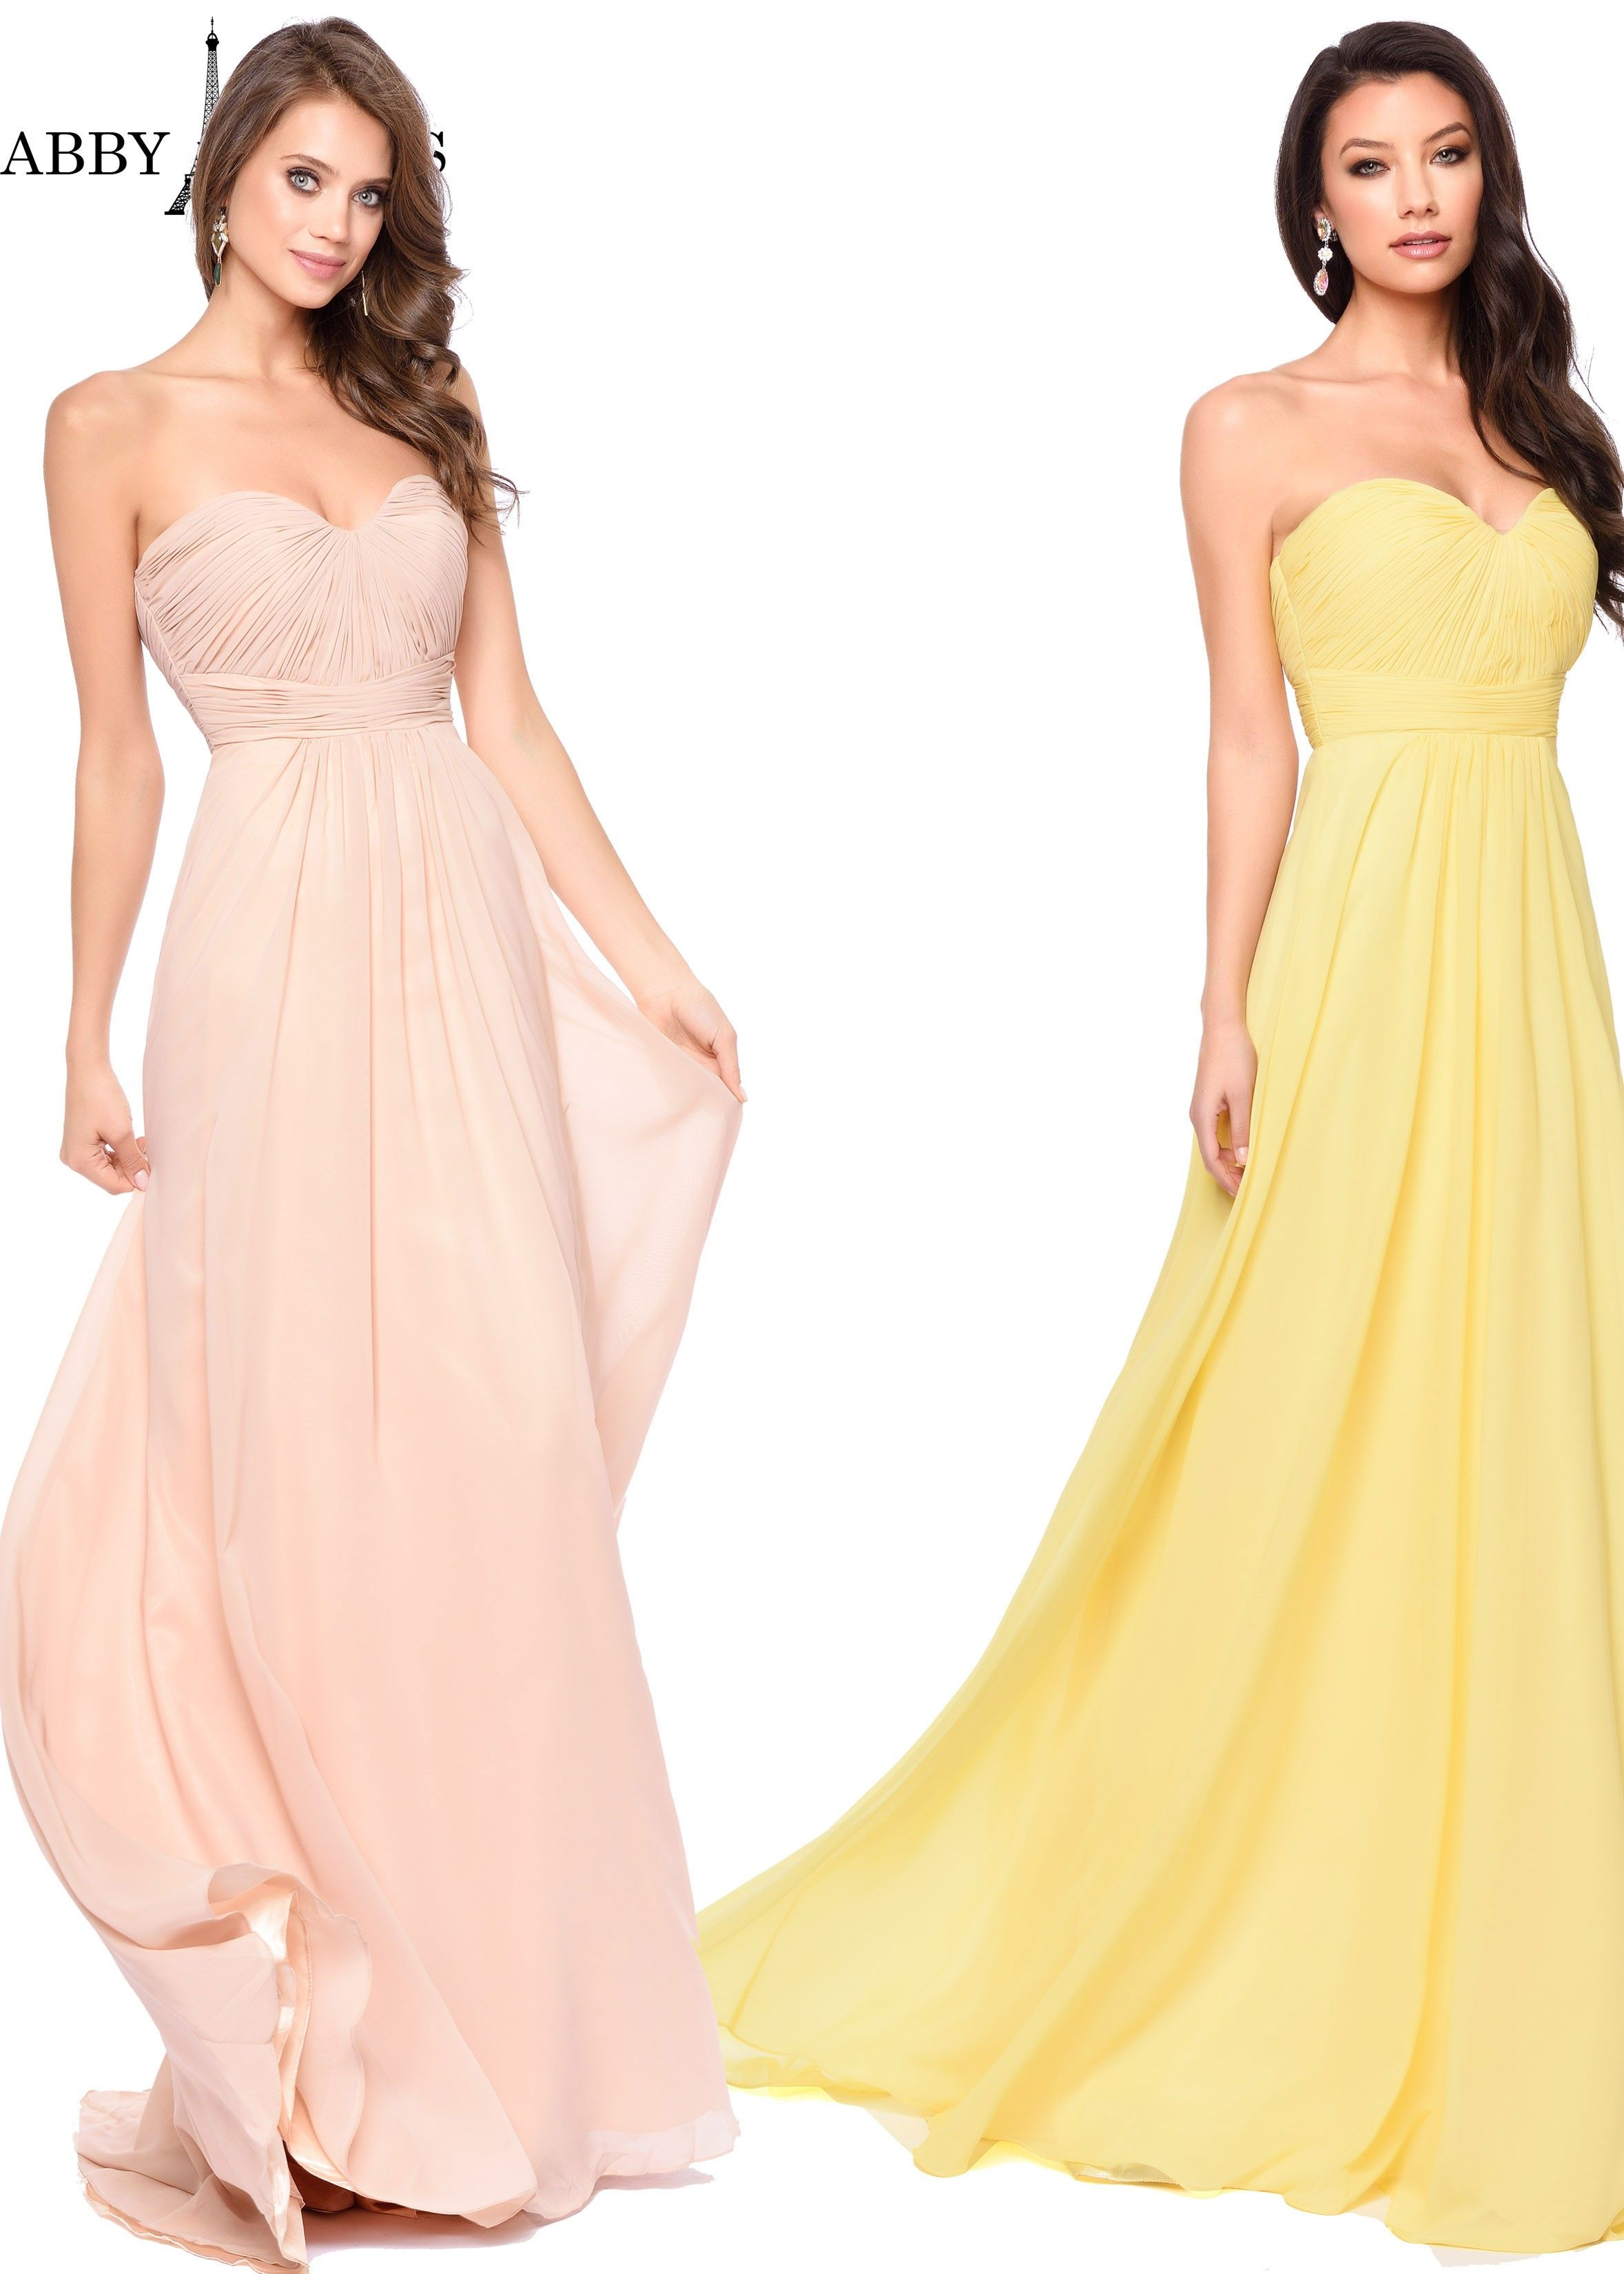 eb8265303d0 Abby Paris by Lucci Lu 93003 Strapless Chiffon Gown | The Perfect ...